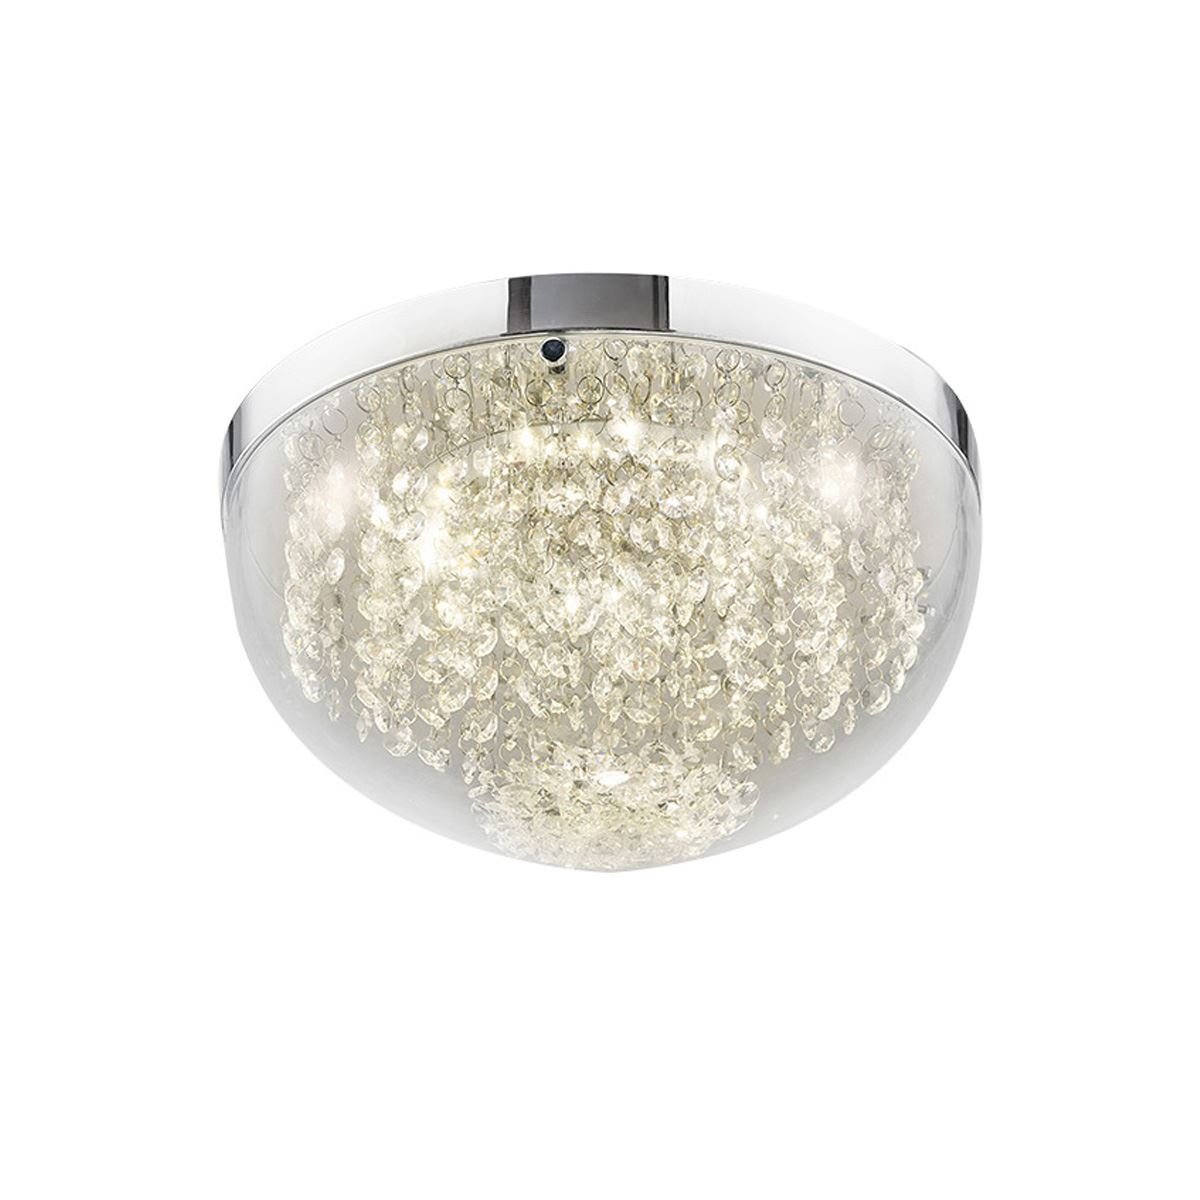 Diyas IL80011 Harper Medium Ceiling 12W 950lm LED 4000K Polished Chrome/Crystal